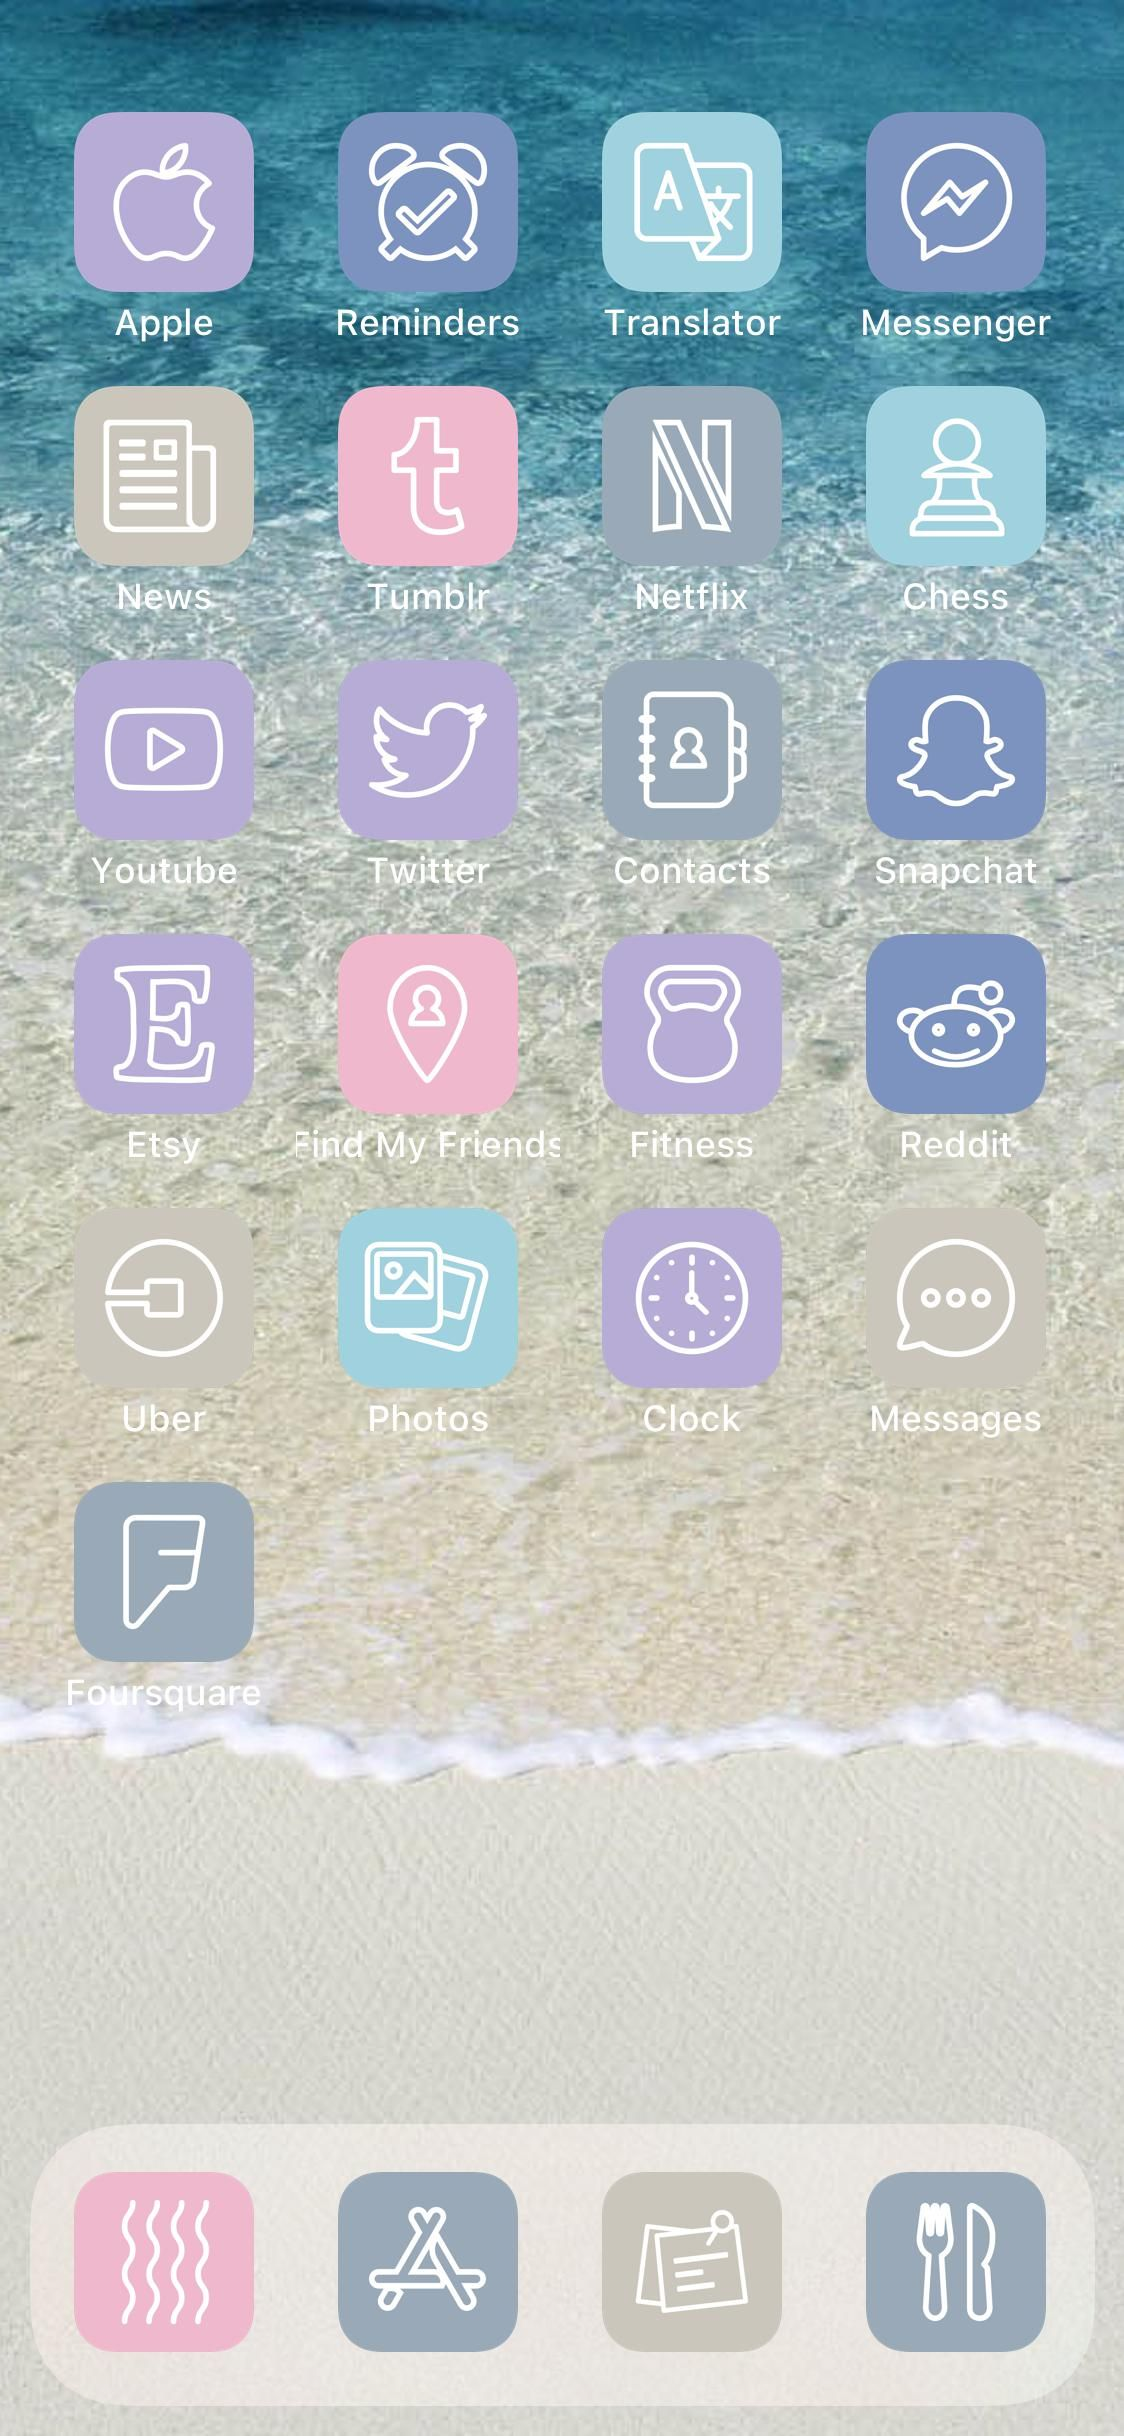 Megapack With 4 000 Unique Pastel Beach Ios 14 App Icons For Your Iphone Or Ipad Home Screen Aesthetic Bundle For Shortcuts Customization In 2021 Find My Friends Snapchat Logo App Icon